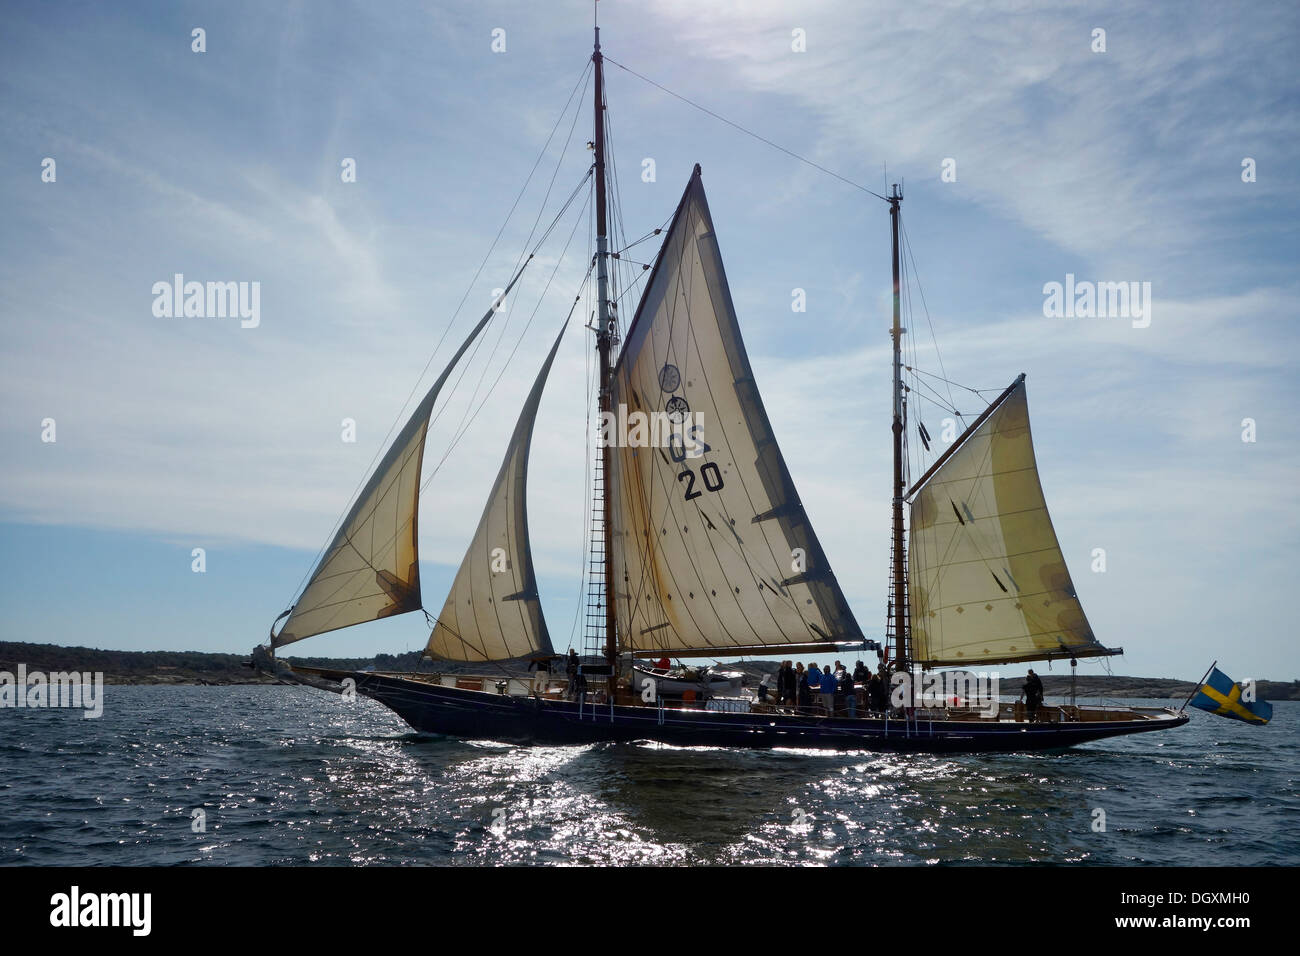 A double-gaff ketch under sail. - Stock Image